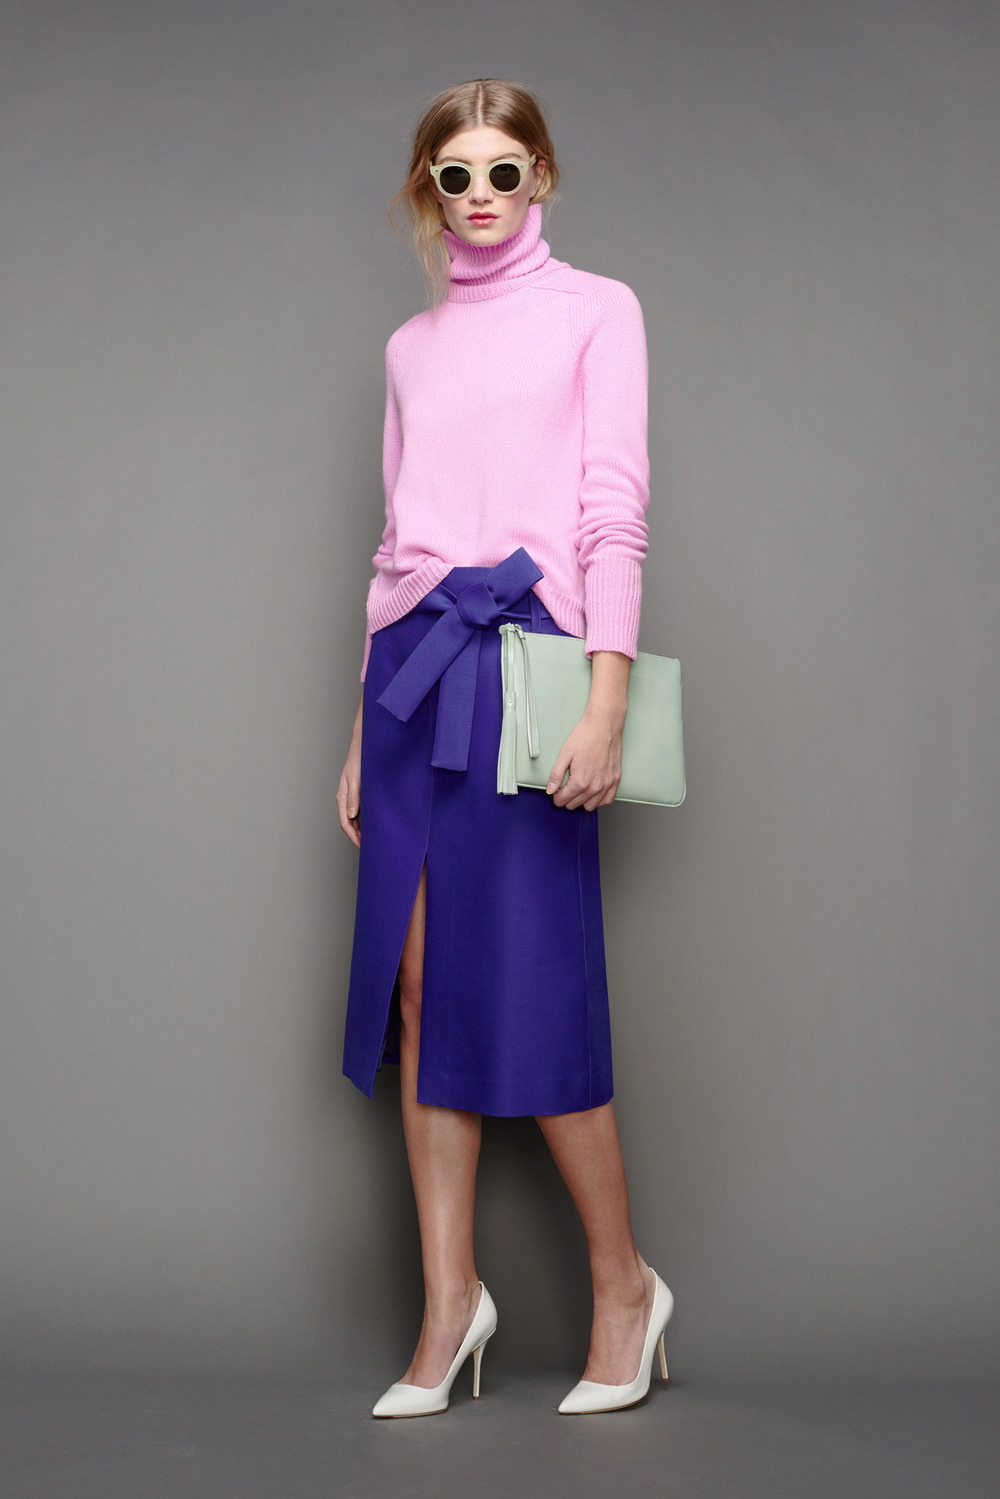 jcrew fall 2015 pink sweater.jpg